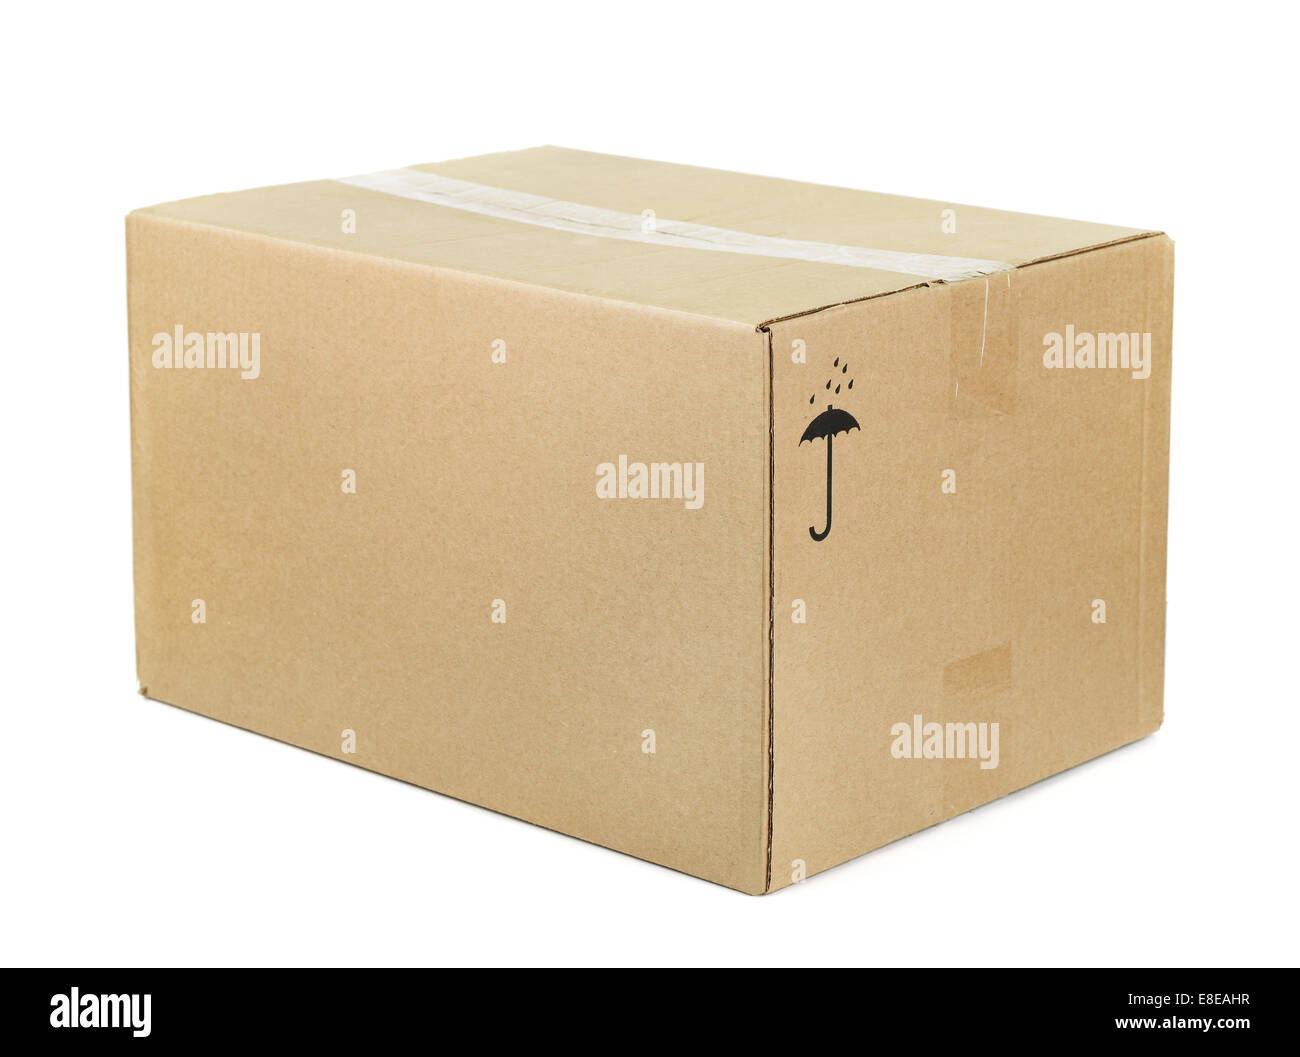 Closed cardboard box isolated on white - Stock Image